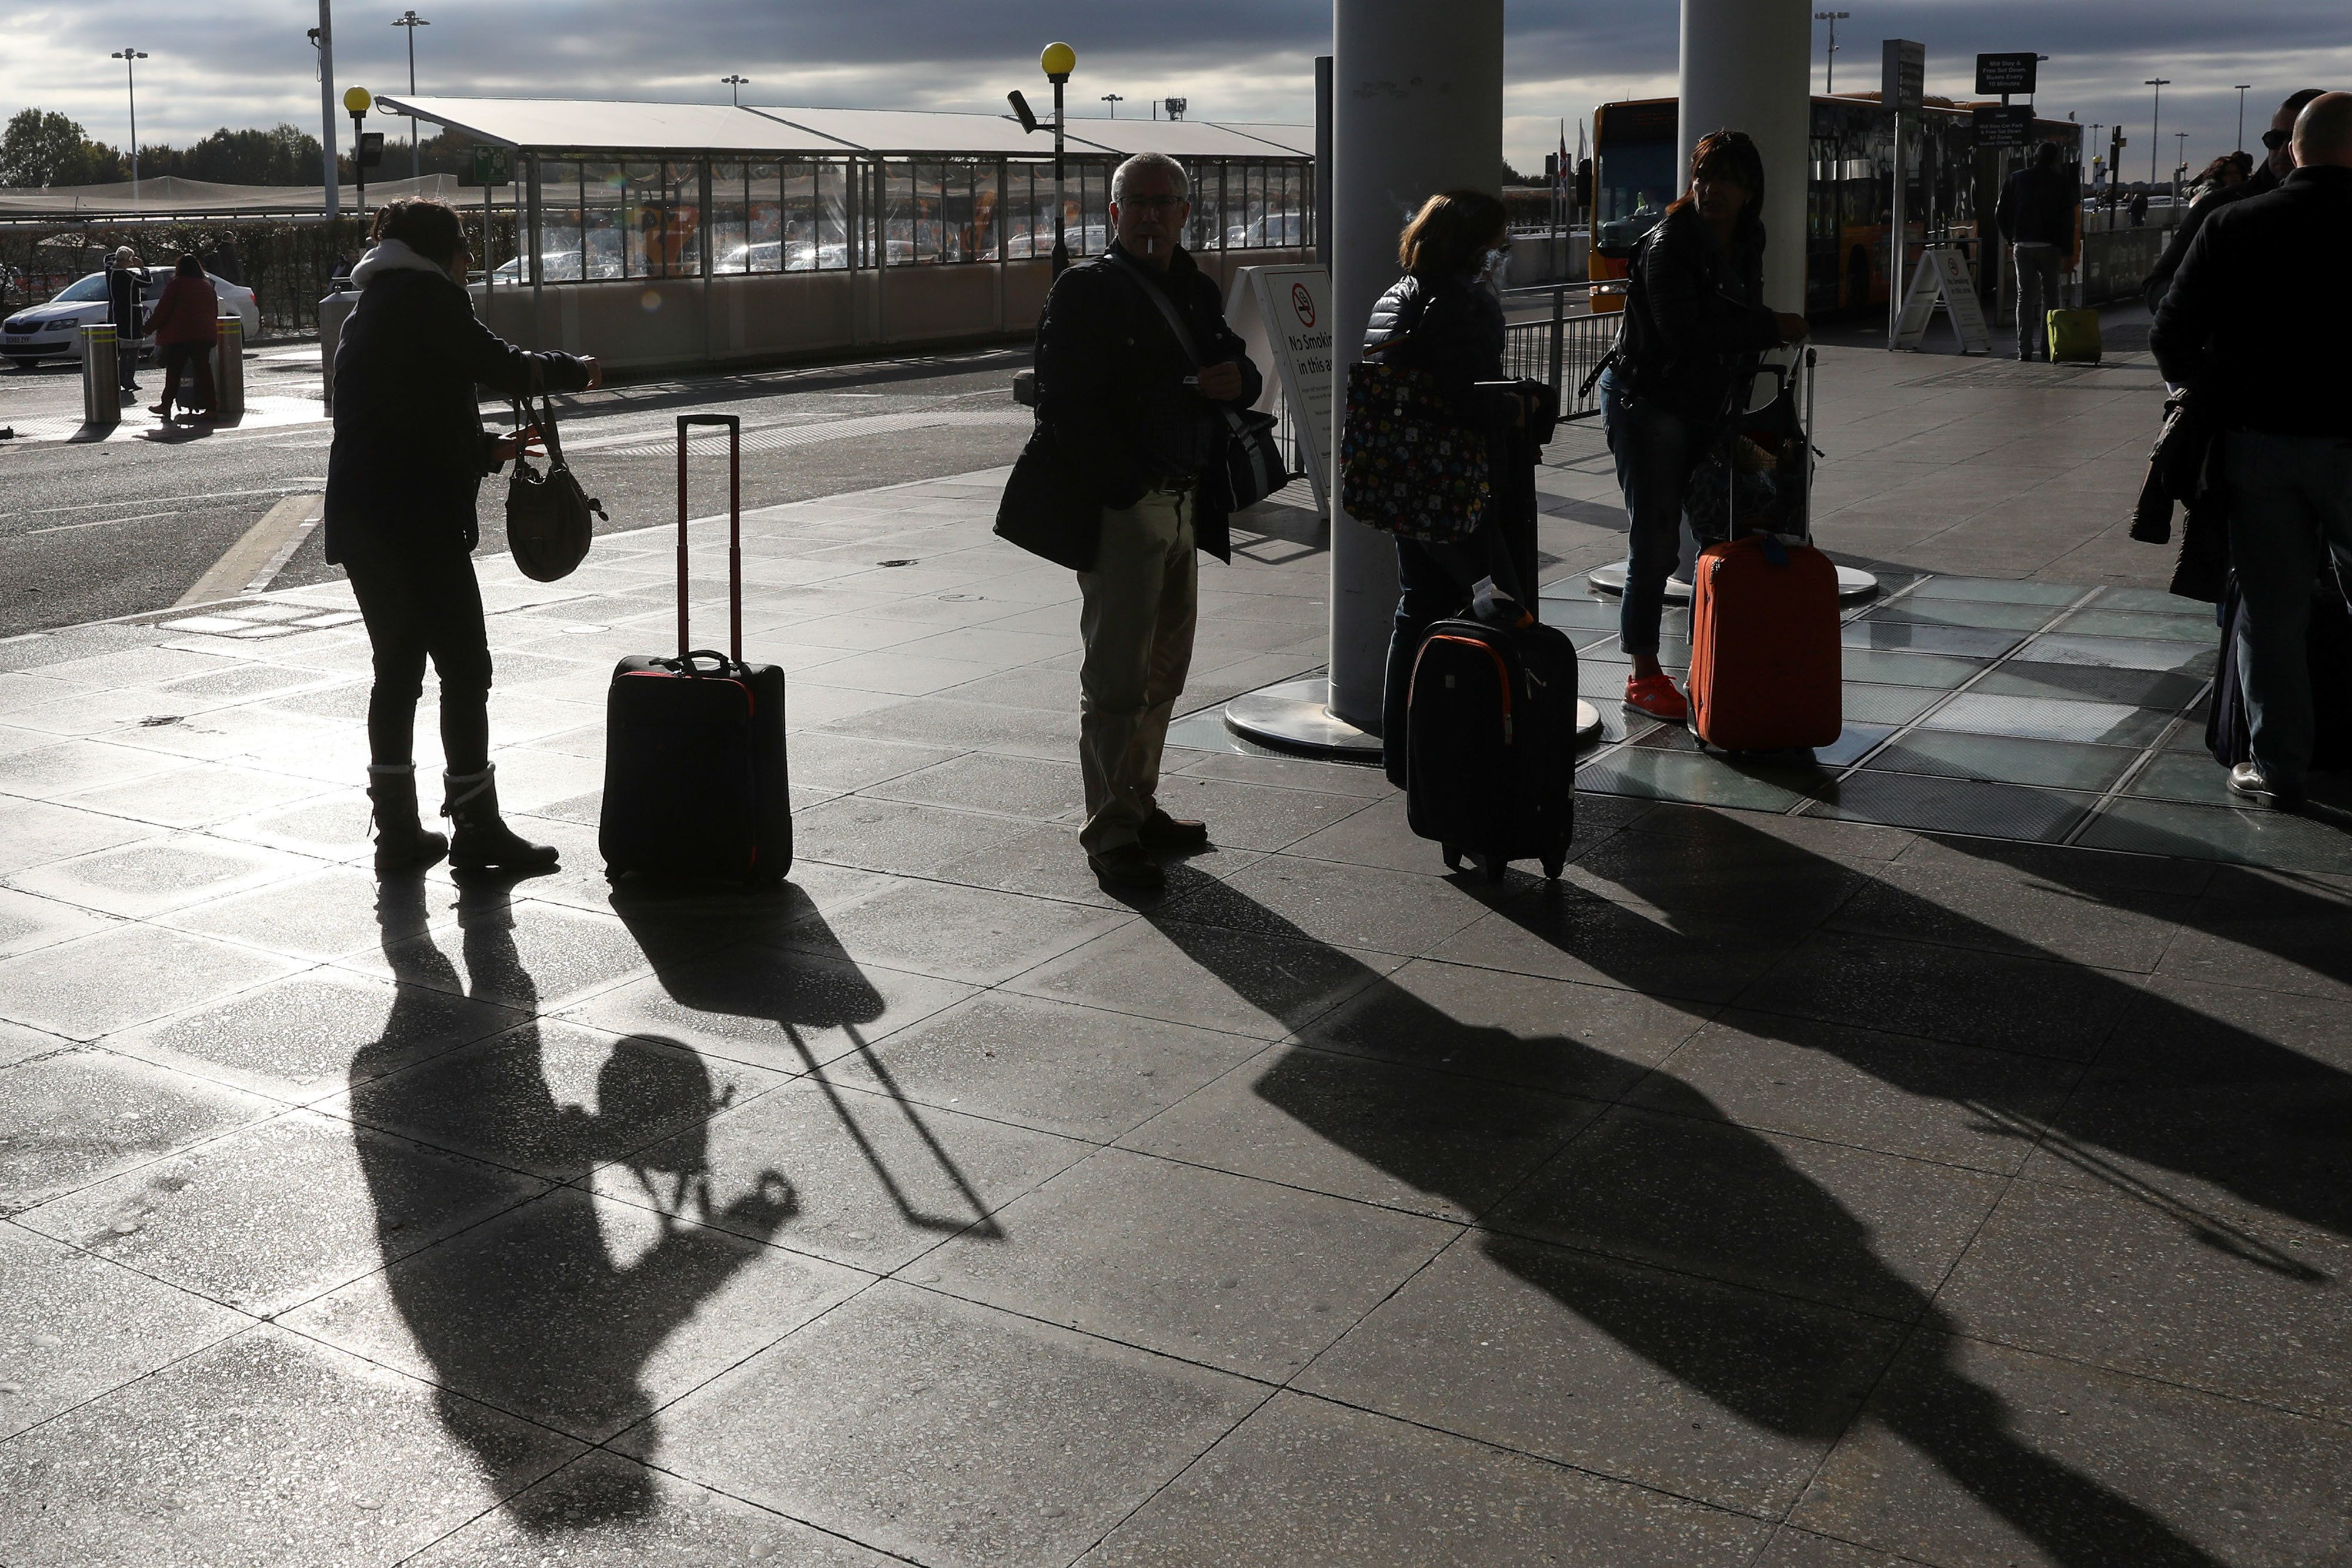 Bloomberg via Getty Images Up to 9,000 passengers a day could be affected by the cancellations